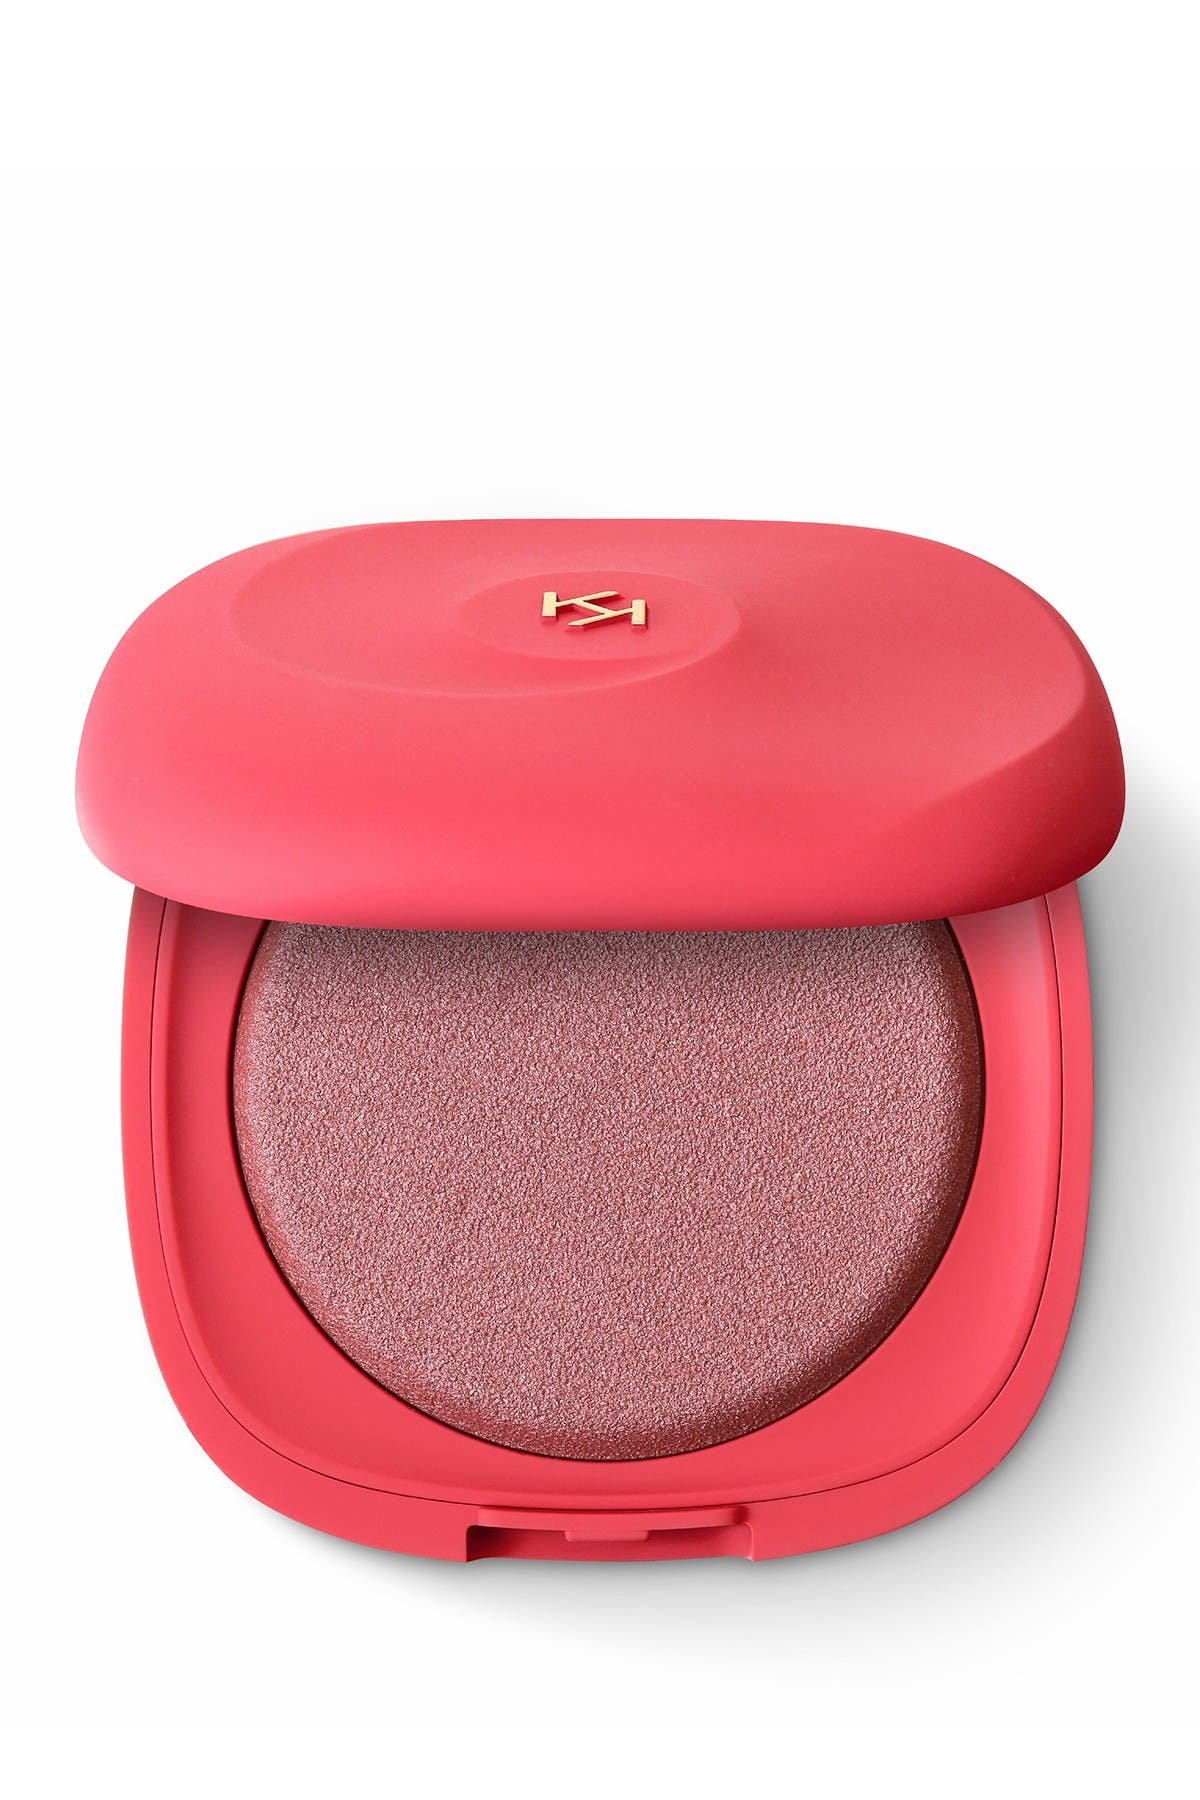 Image of Kiko Milano Mood Boost Radiant Blush - 03 Perfect Mauve